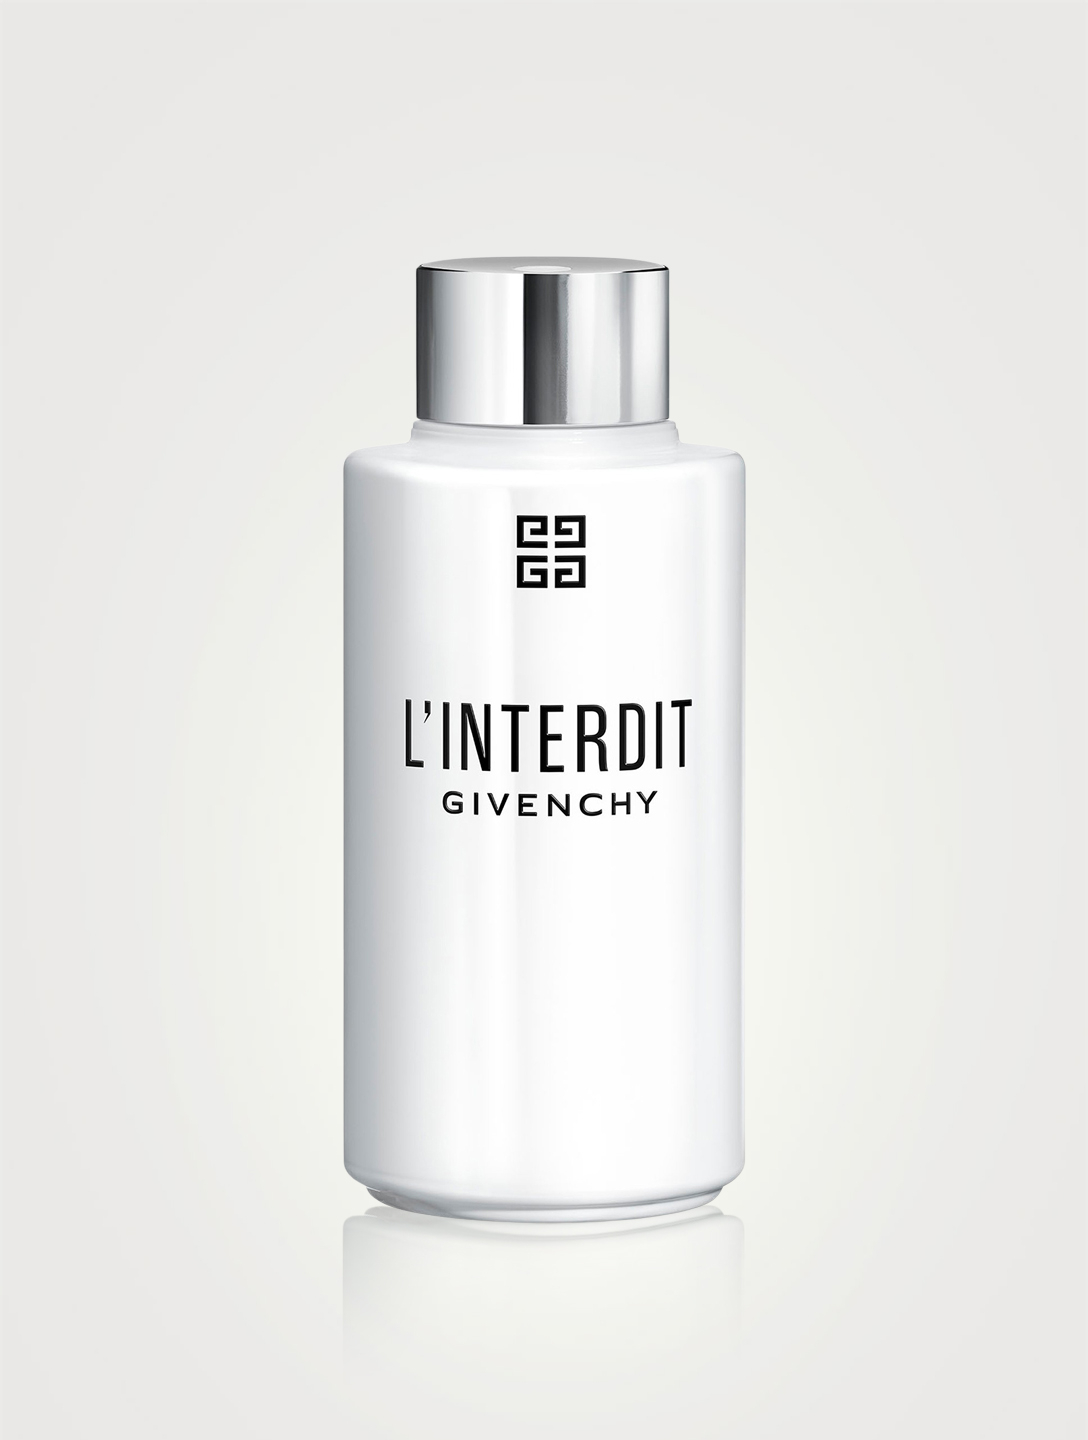 GIVENCHY L'Interdit Bath & Shower Oil Beauty